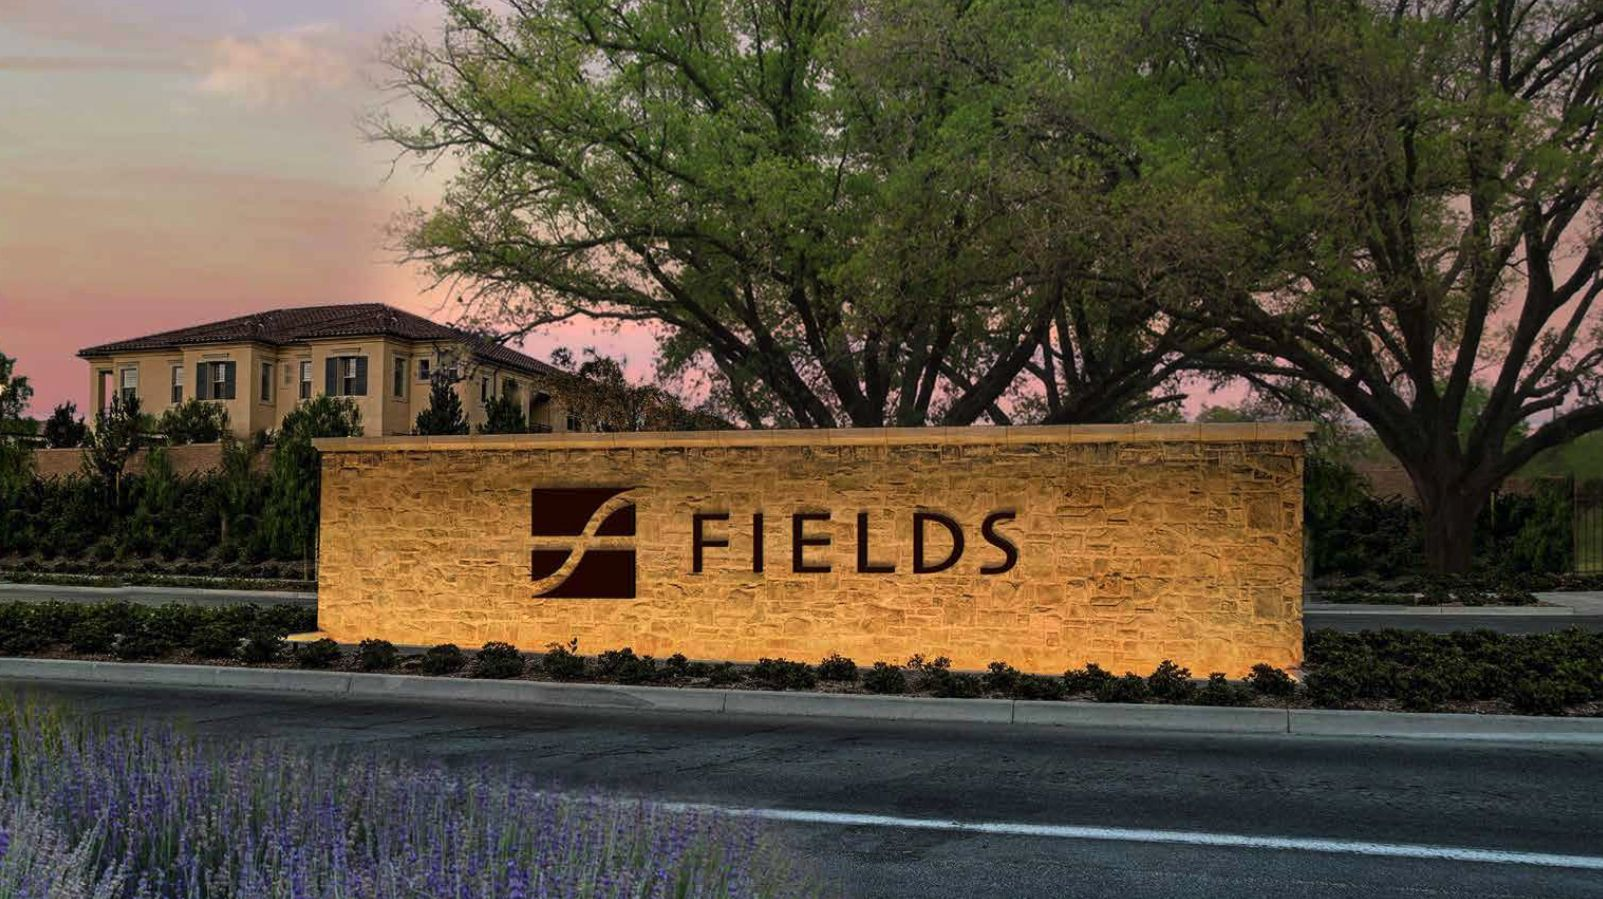 The 2,500-acre Fields development in Frisco is one of North Texas' largest new communities.